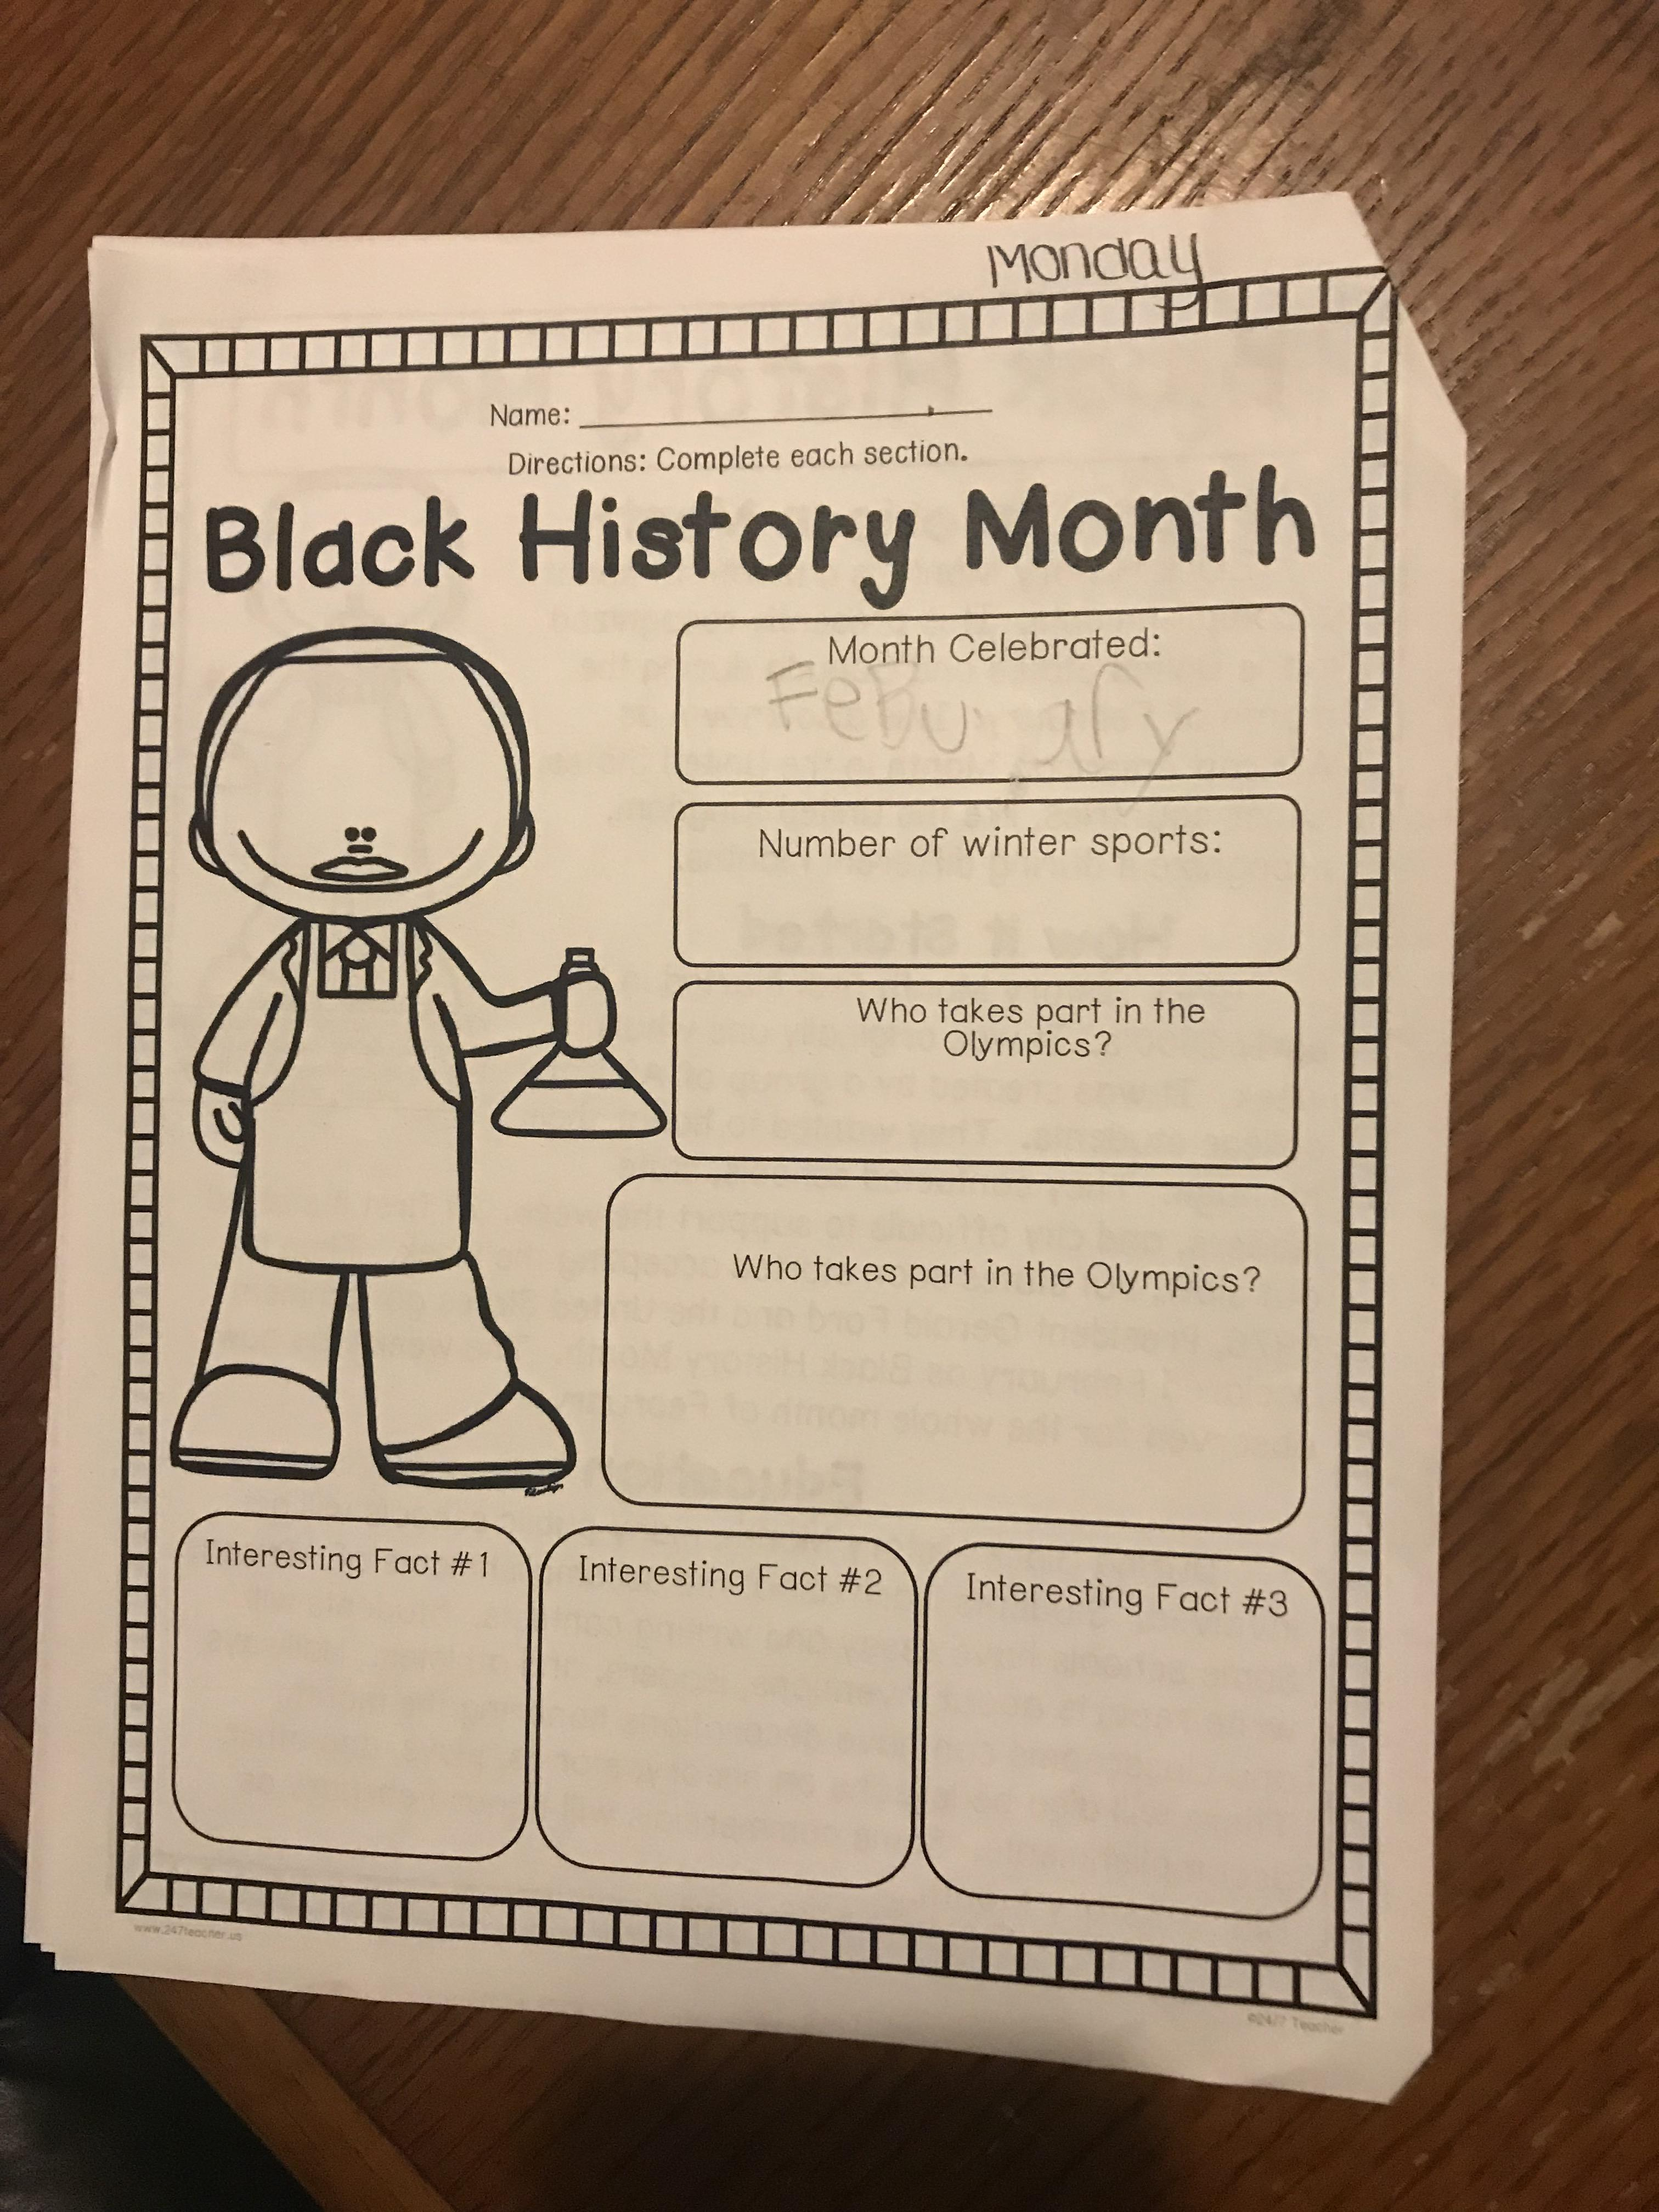 Black History Month Worksheet In A Florida School